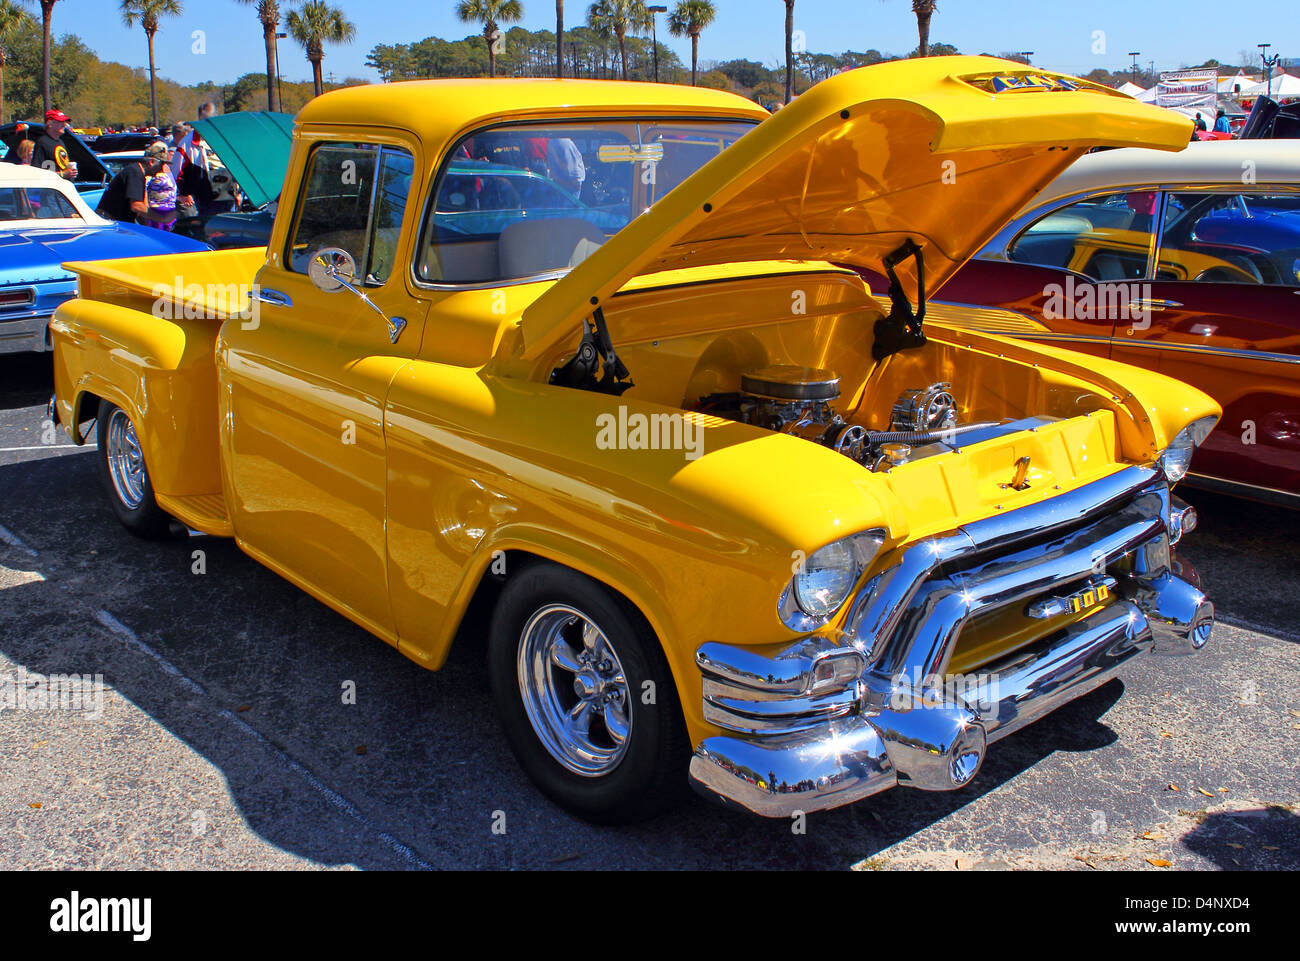 Run Sun Car Show Stock Photos Run Sun Car Show Stock - Myrtle beach car show